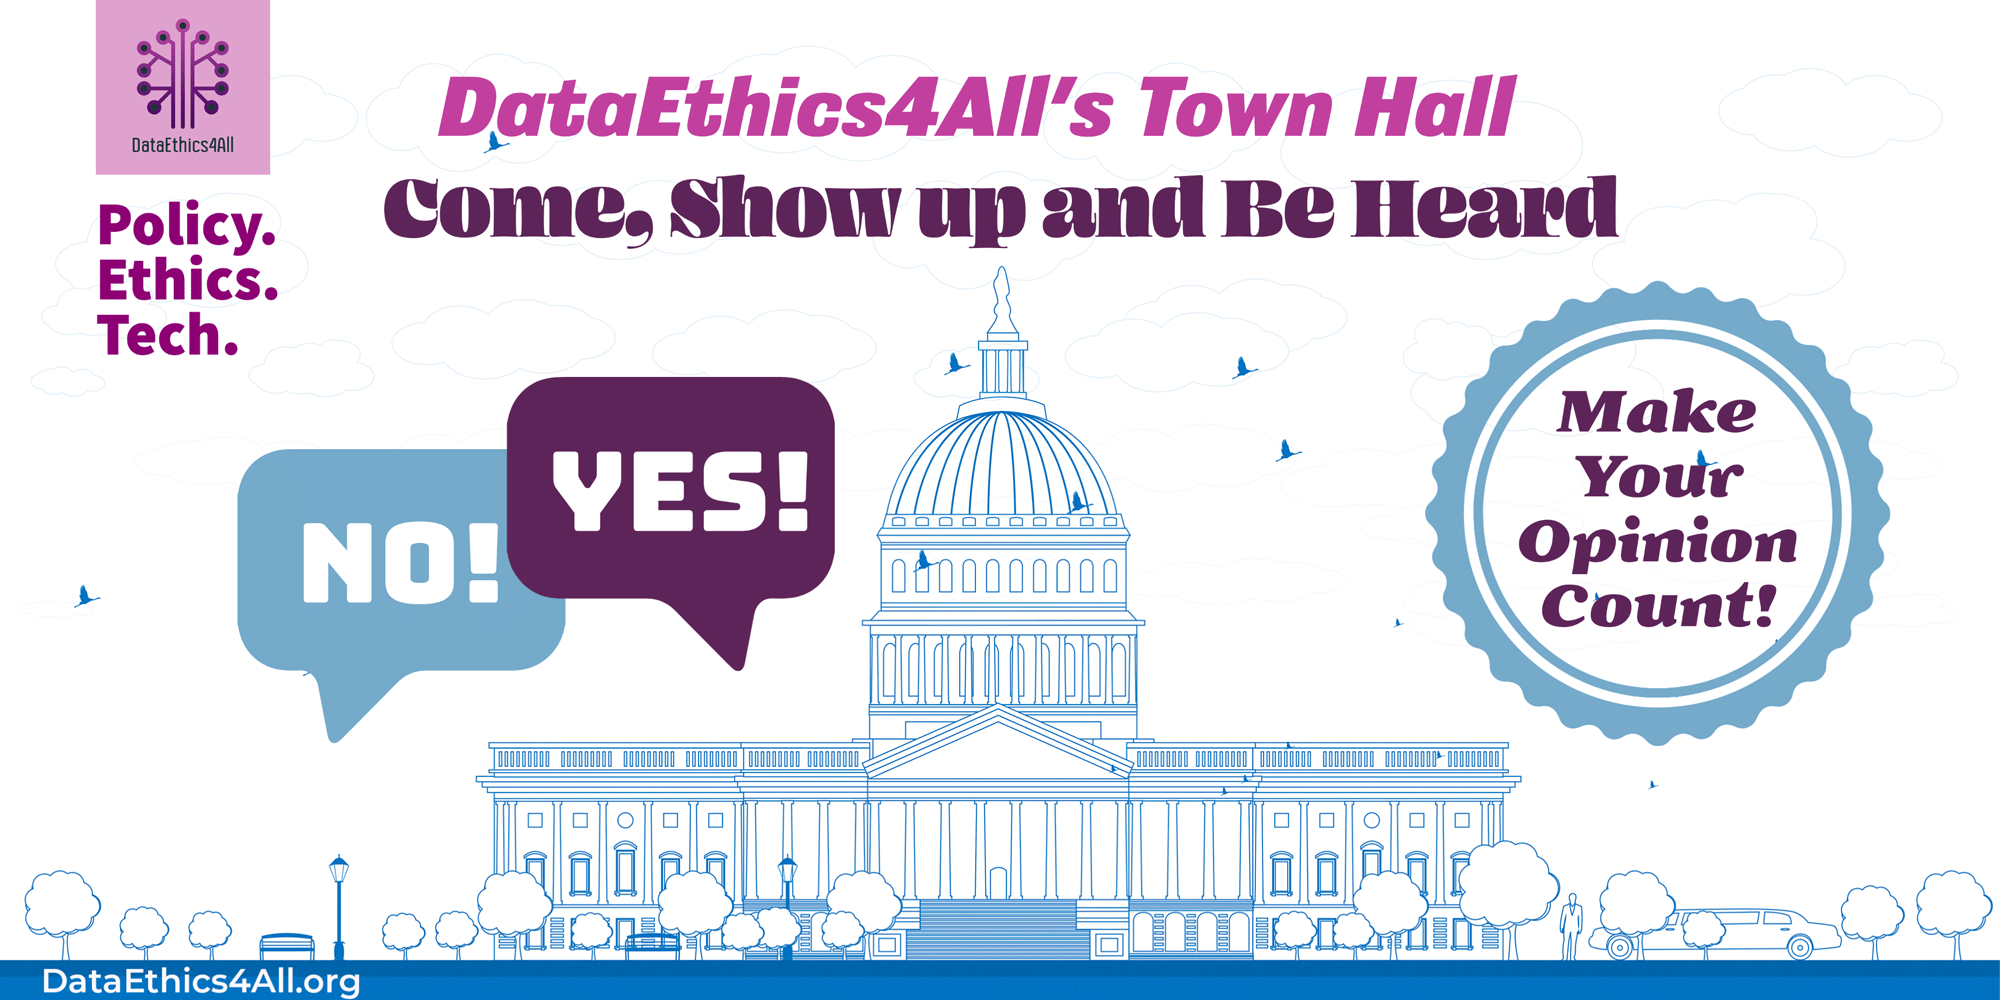 DataEthics4All-Policy-Ethics-Tech-Think-Tank-Town-Hall-Meetings